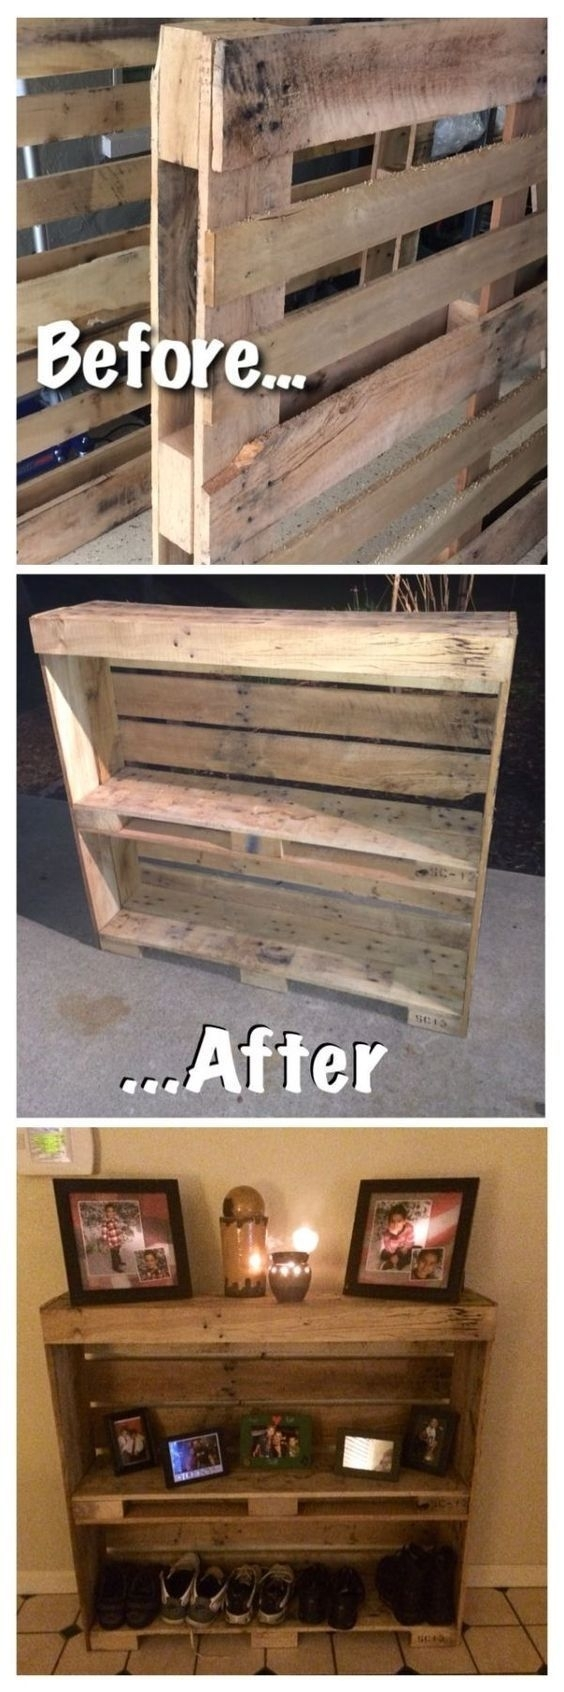 216 Best |pallets| Images On Pinterest | Pallet Ideas, Pallet Intended For Most Popular Wall Accents Made From Pallets (View 12 of 15)